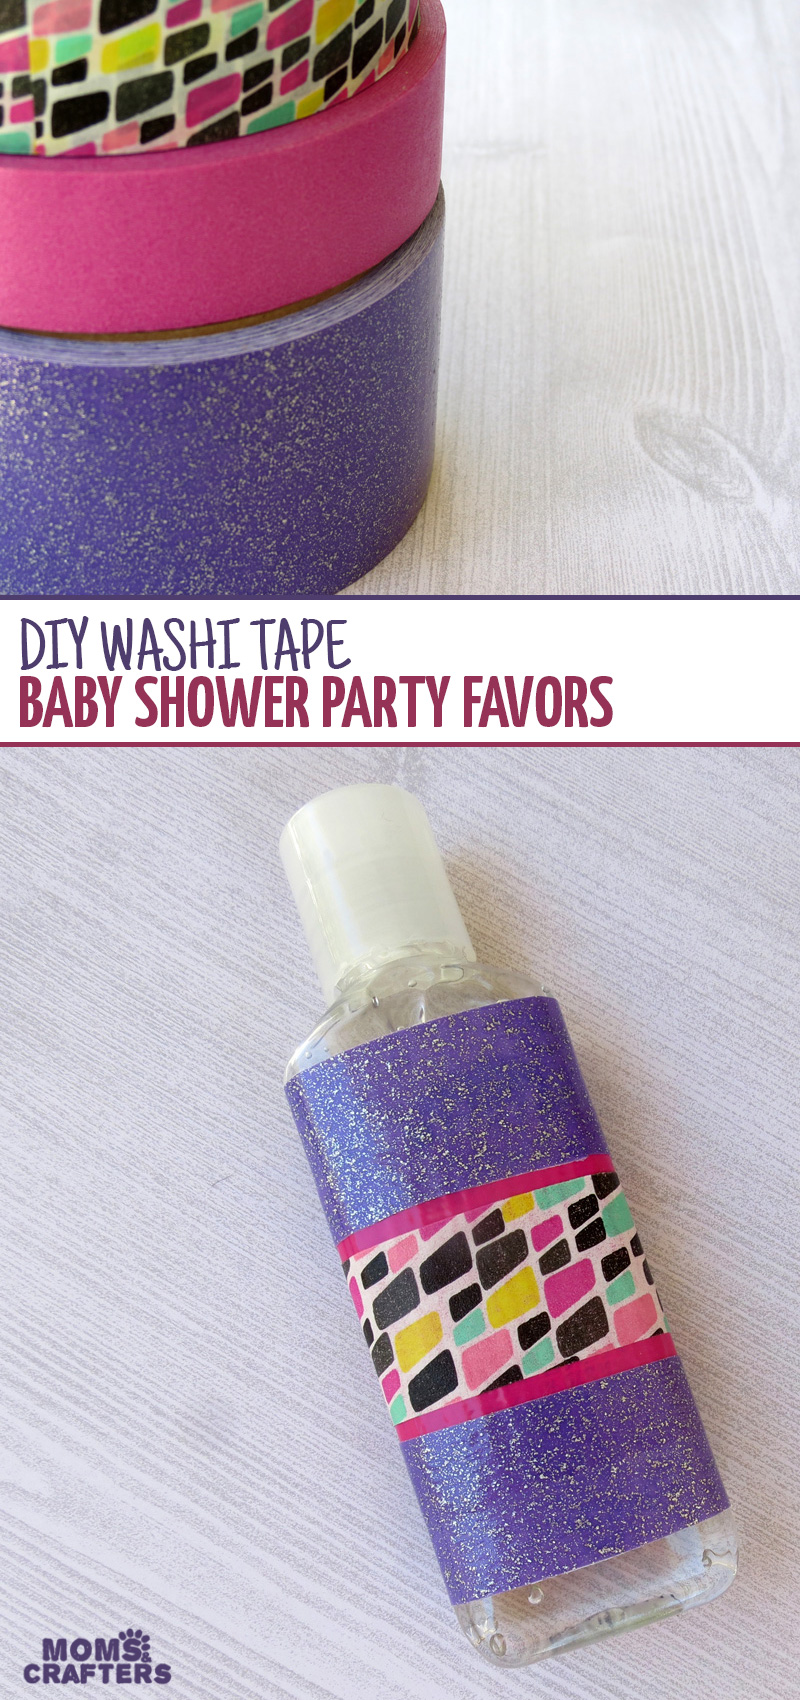 Why Washi Tape Bomb A Hand Sanitizer Bottle, You Ask? These Make The